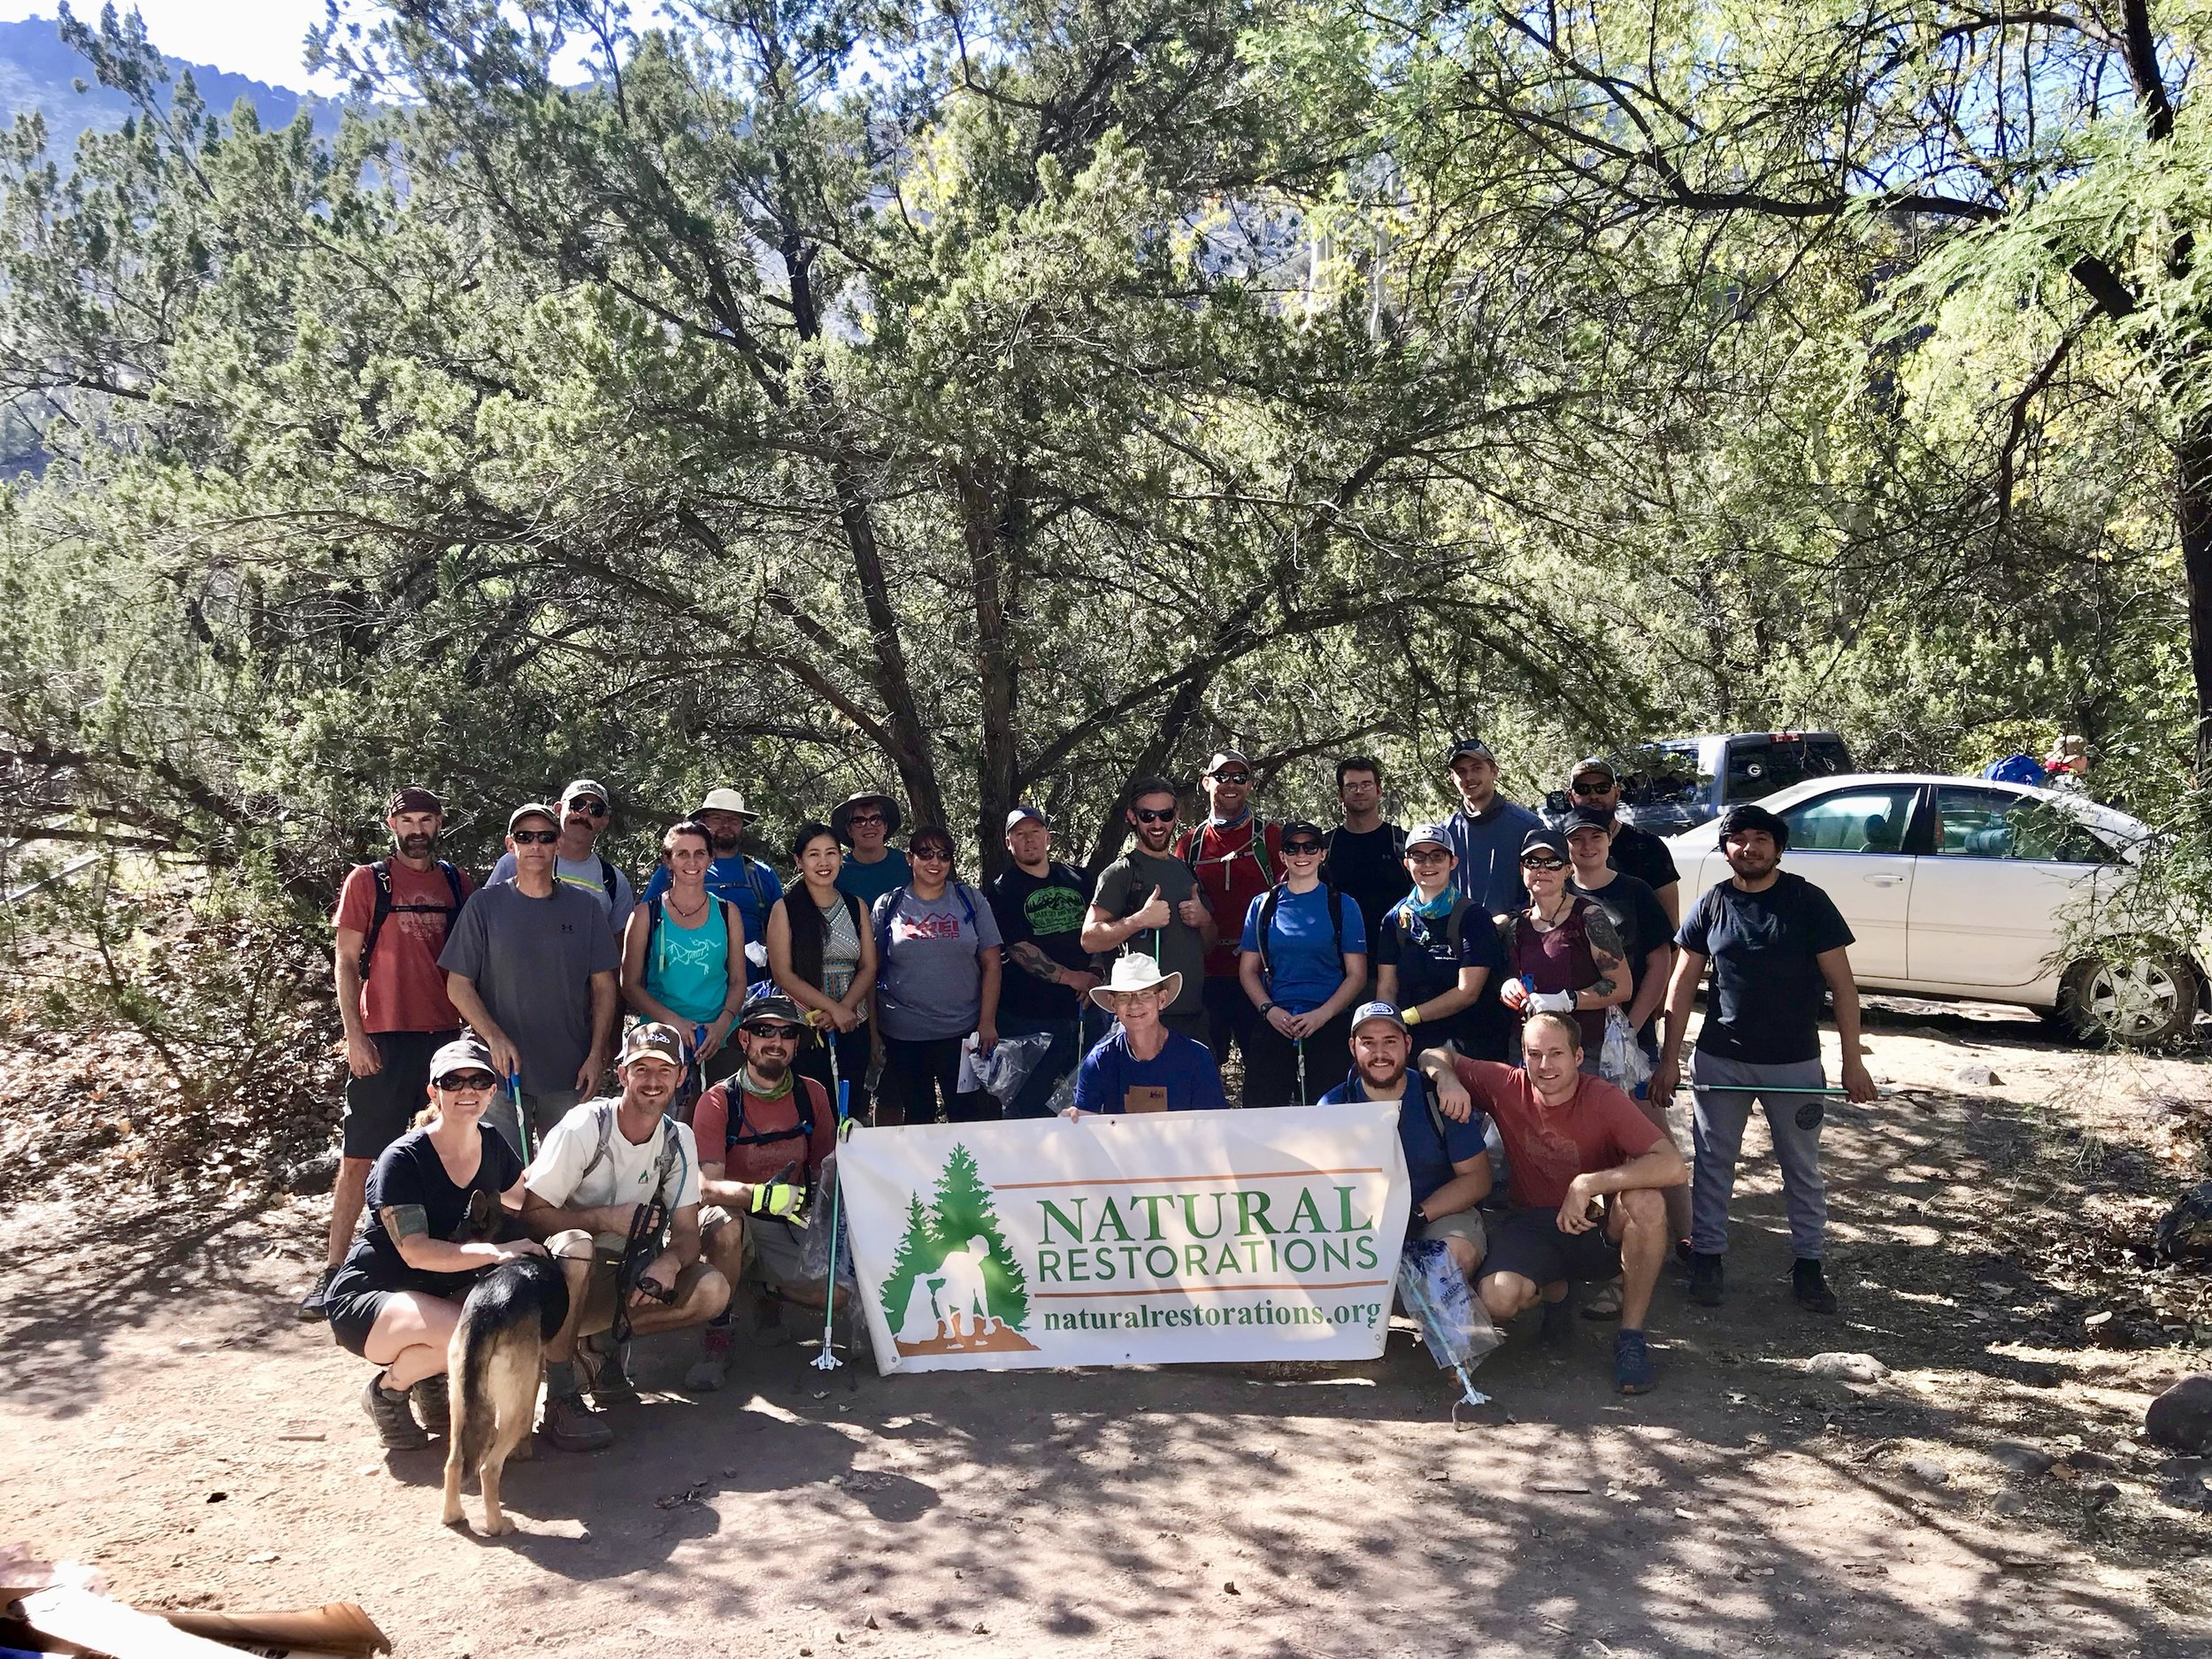 09/15/18 - Bull Pen Day Use Area Cleanup with REI for International Costal Cleanup DayClick HERE to view the project.